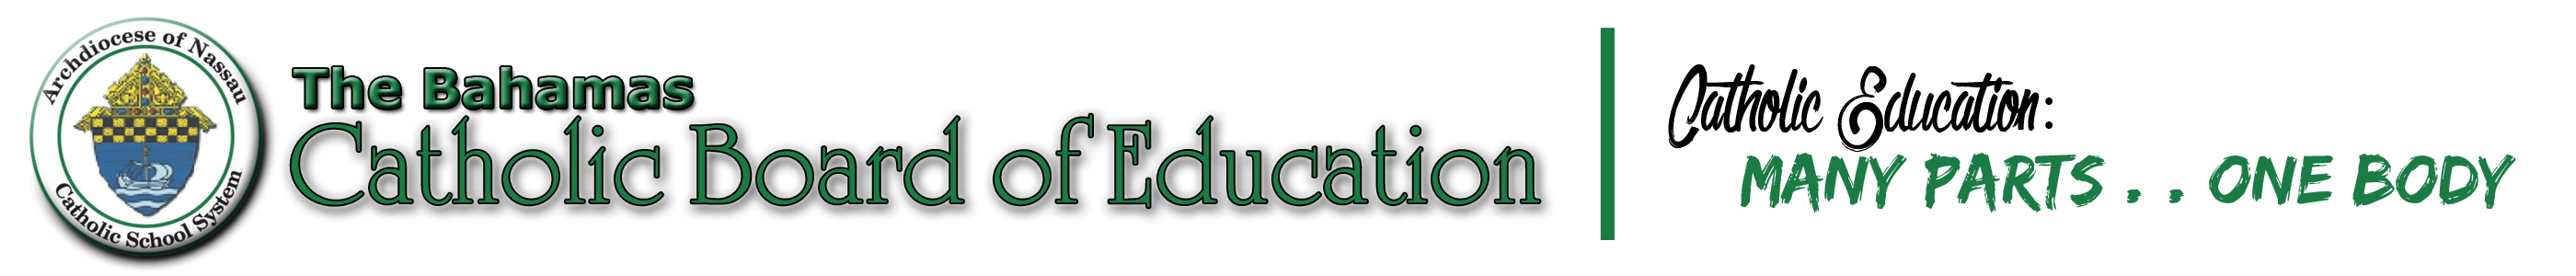 Catholic Board of Education Logo